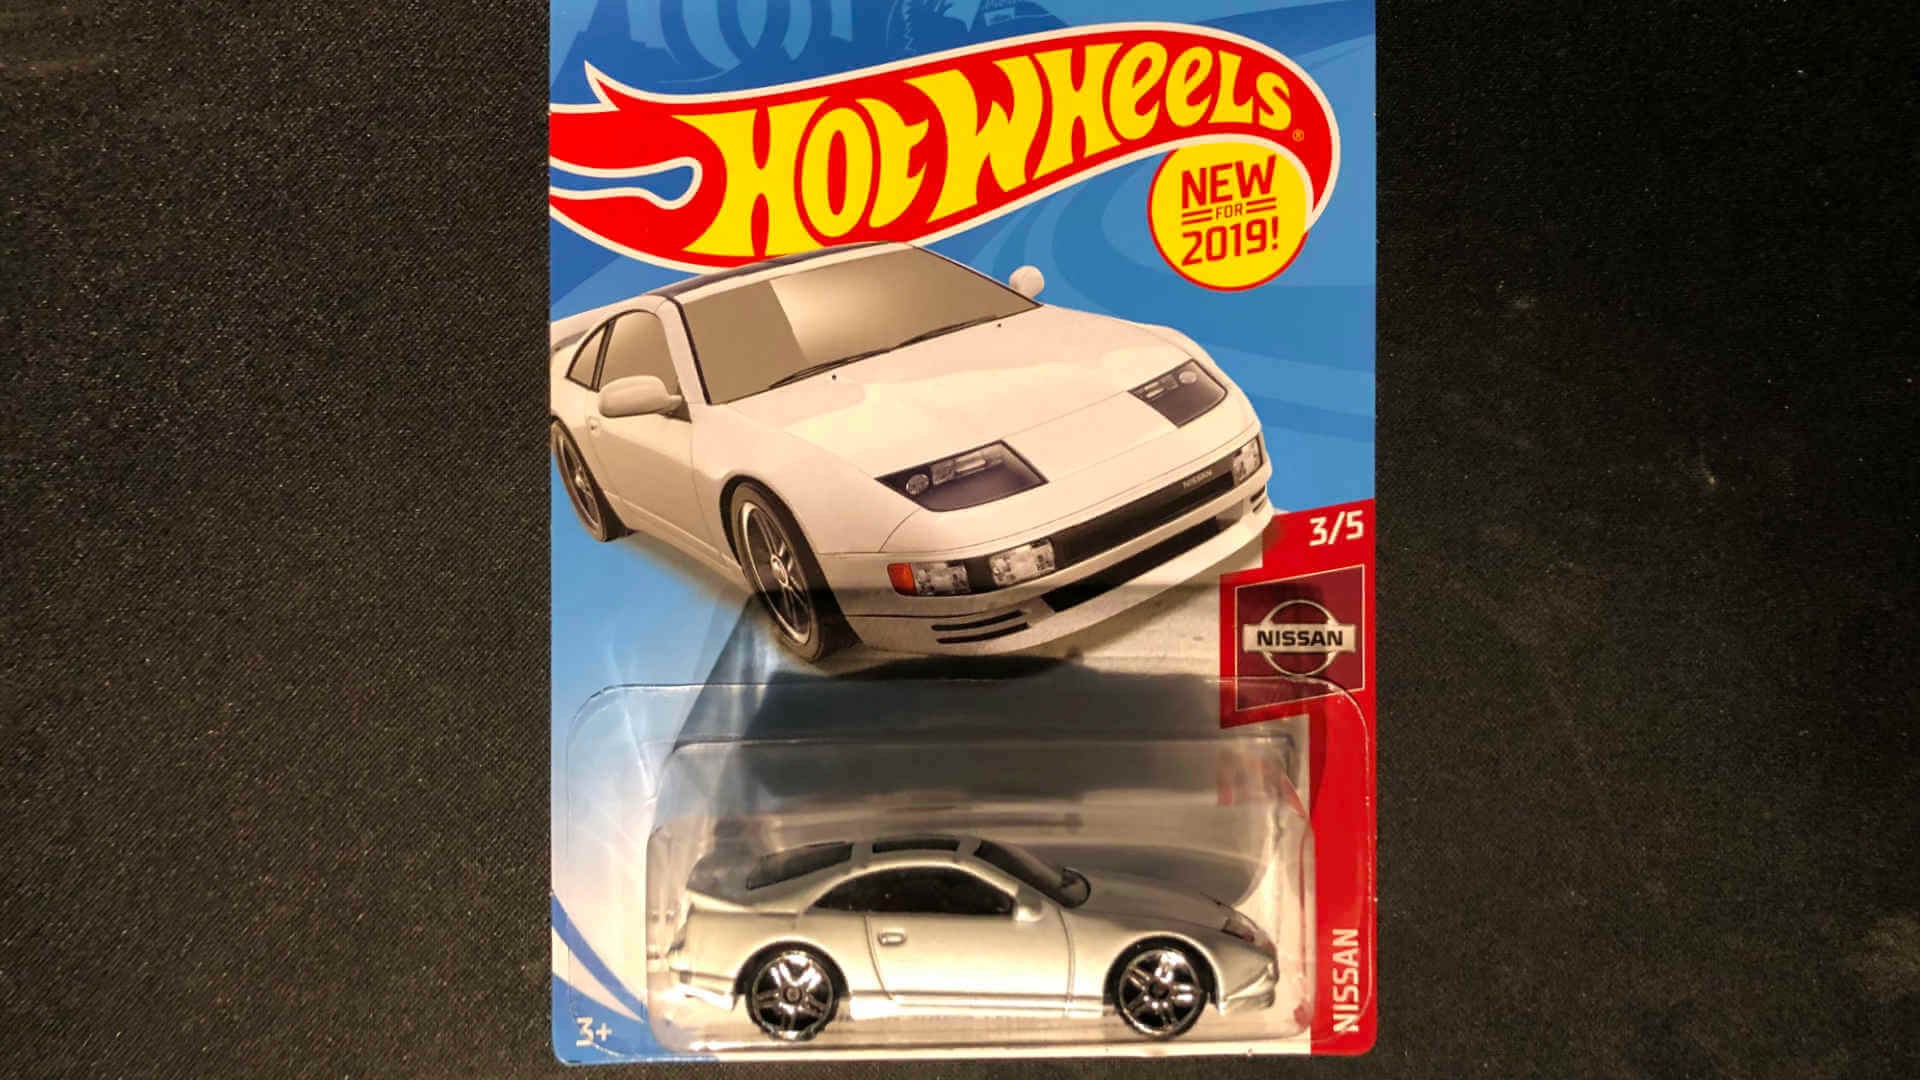 These days I limit myself to collecting the odd reminder from childhood. My first car was a Nissan 300ZX and good old Hot Wheels recently released a version based on the Twin Turbo that sits in our garage; I couldn't resist the little toy when I saw it at our grocery store.